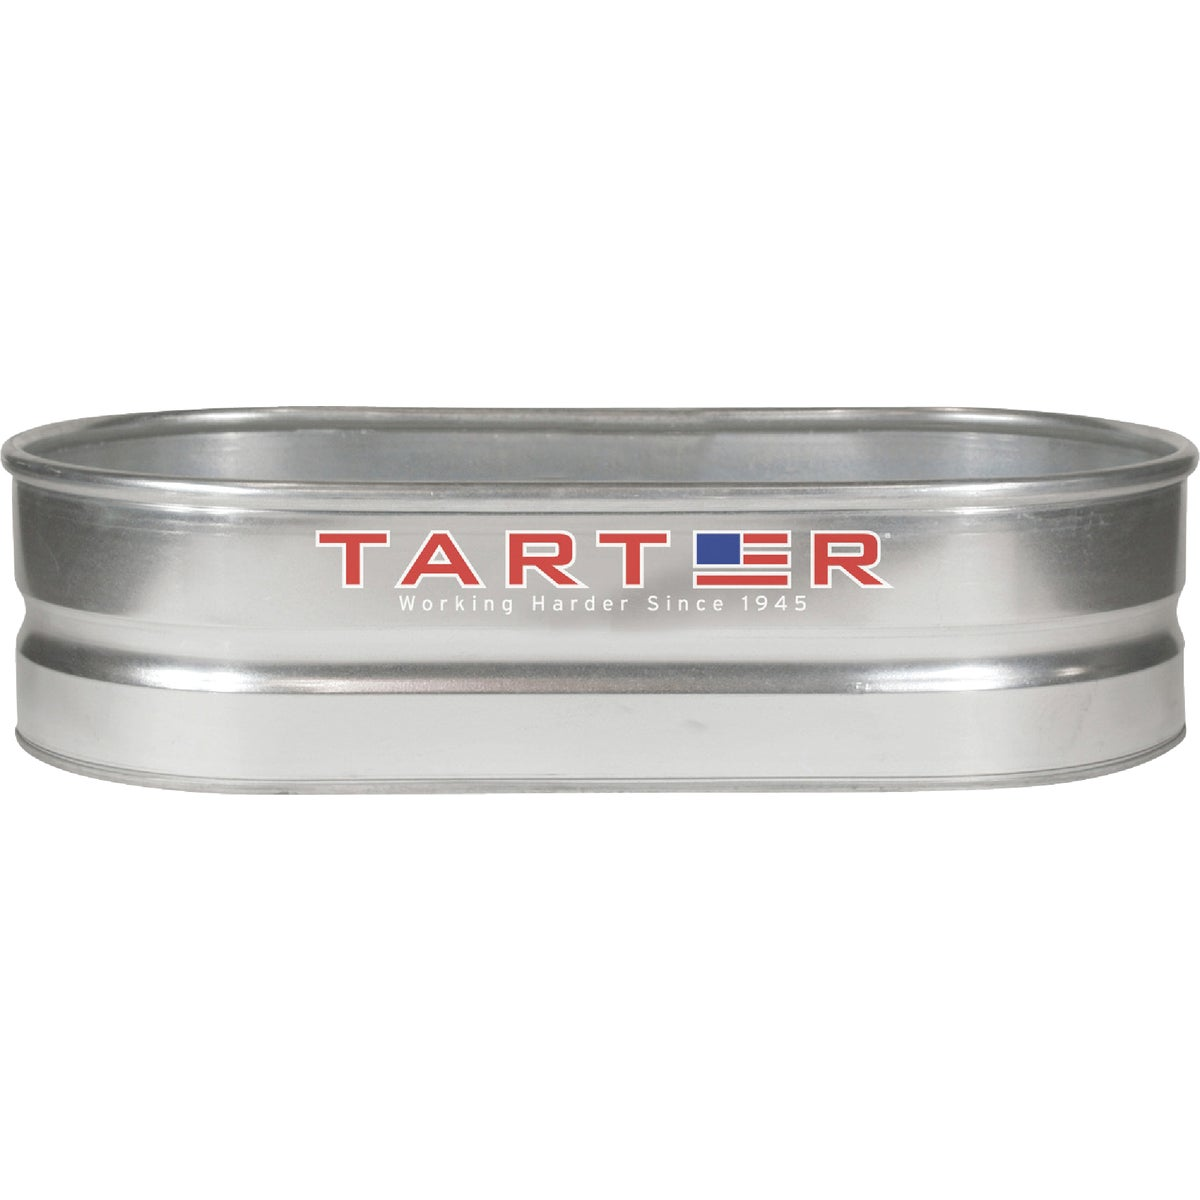 44GAL GLV WATER TANK - WT214 by Tarter Llc